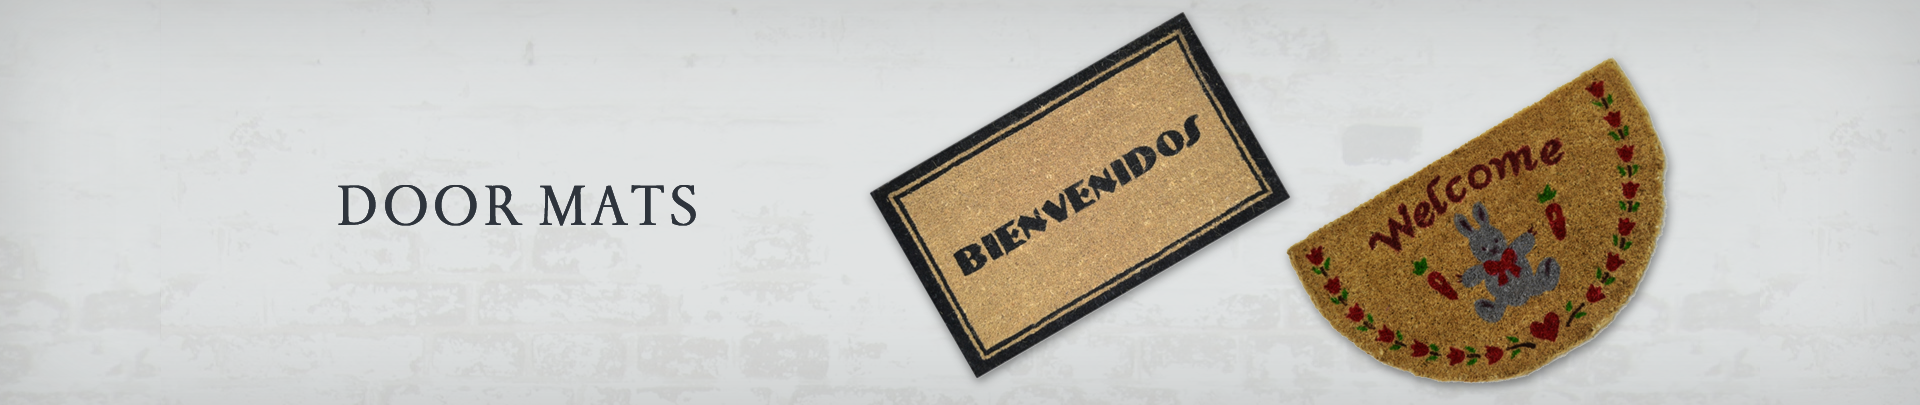 decor-door-mats.png